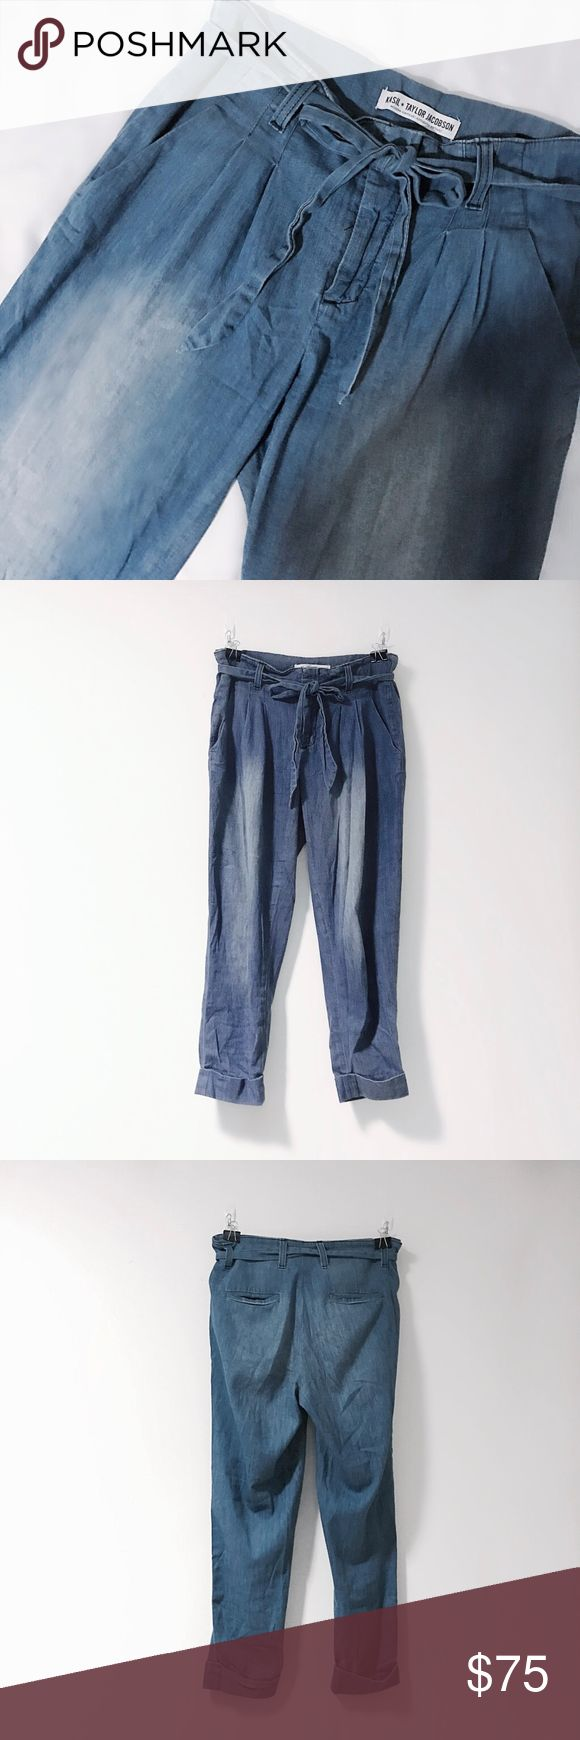 """Kasil + Taylor Jacobson """"Artisan"""" Crop Pant Lightweight chambray jeans by Kasil Collective for Taylor Jacobson. These feature a paperbag pleated waist with tie-front detail and tapered, relaxed fit. Cuffed, cropped hems. Four-pocket construction, triple hook, button, and zip closure. Tuck in a vintage t-shirt and pair with slides. Great condition with light wear. Size 27/US4, fits true to size- 28""""waist, 10""""rise, 24""""inseam. Has light stretch. Vintage-inspired wash. Retail $155 at Revolve…"""